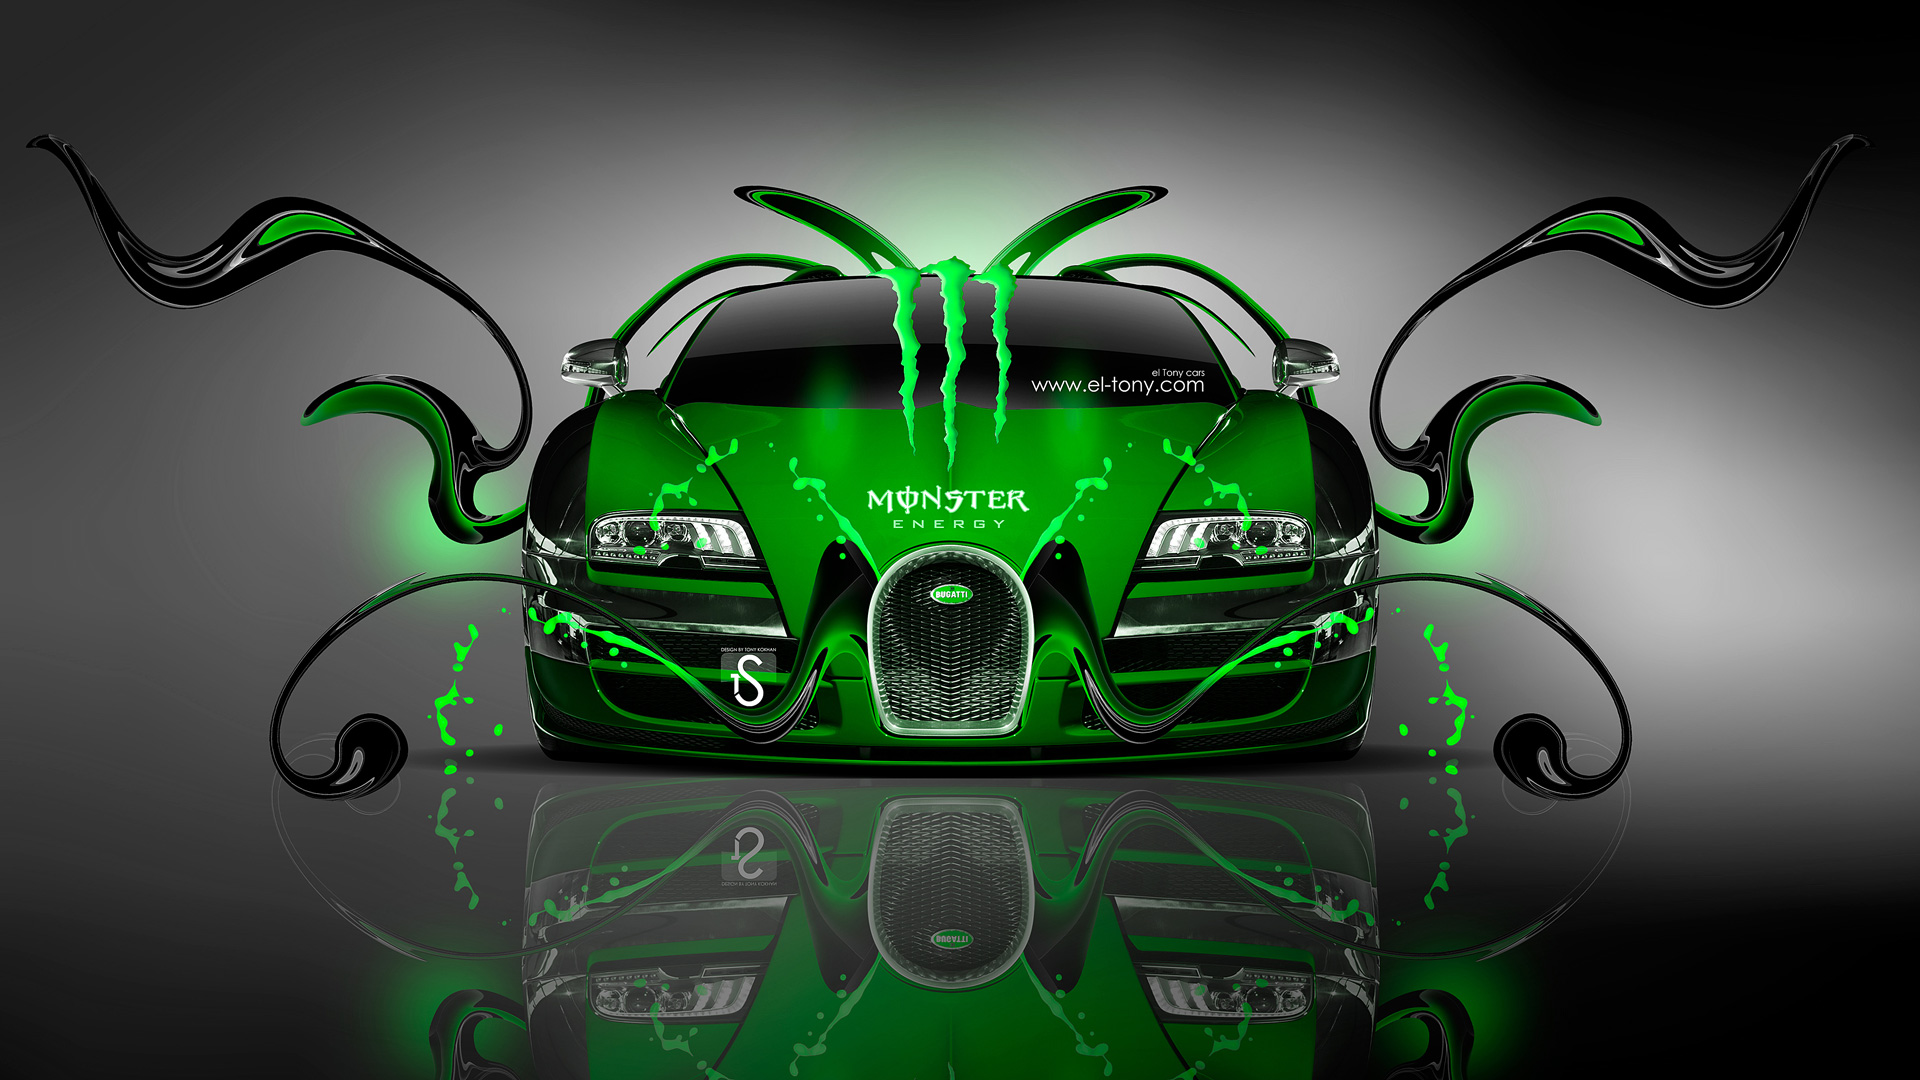 Monster Energy Bugatti Veyron Front Green Plastic Car 2014 Design By  1920x1080